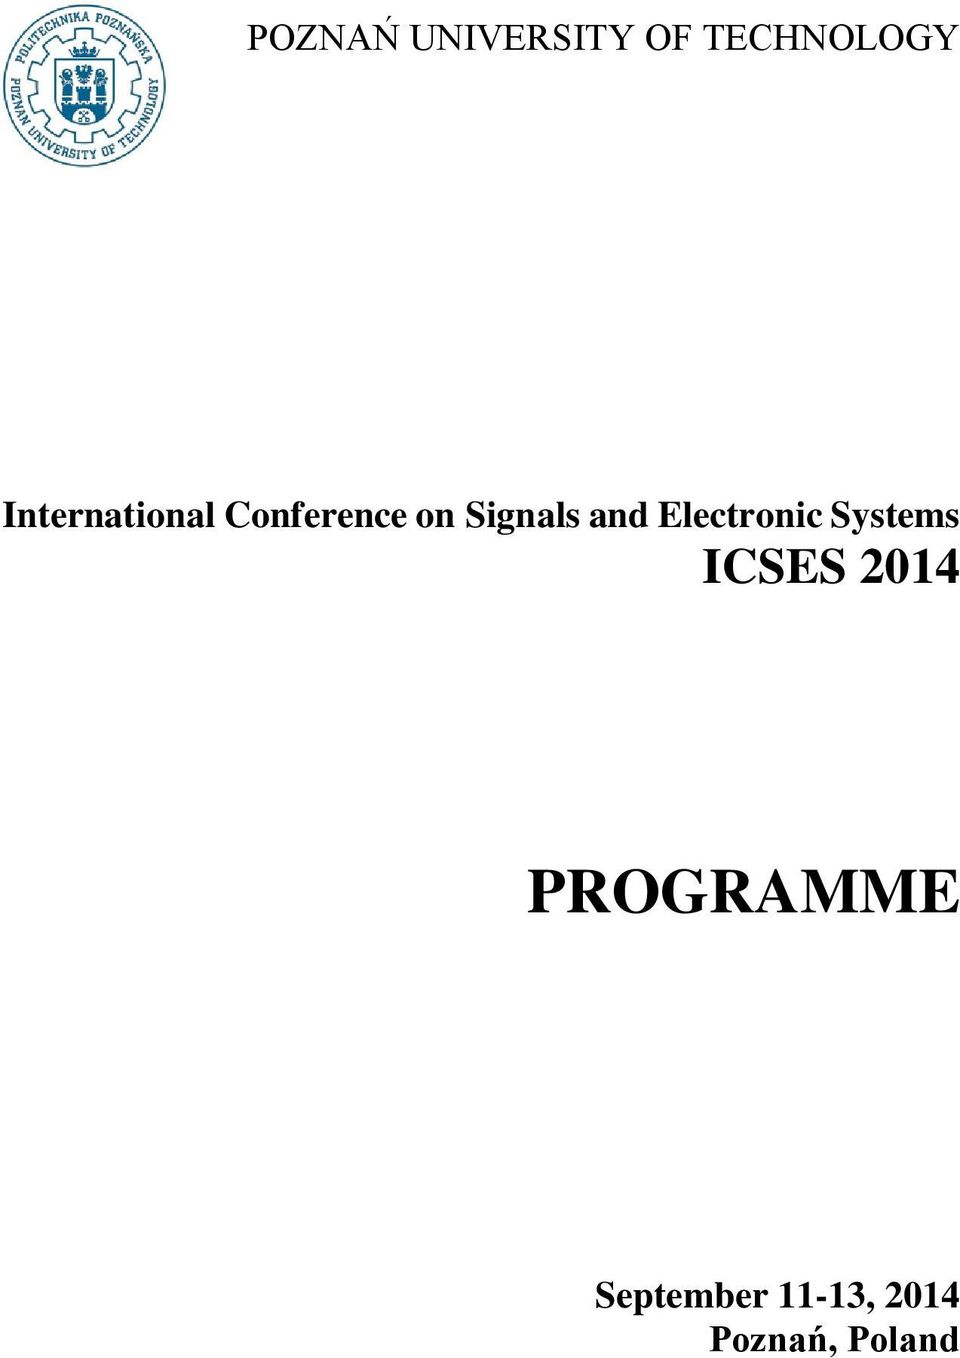 and Electronic Systems ICSES 2014